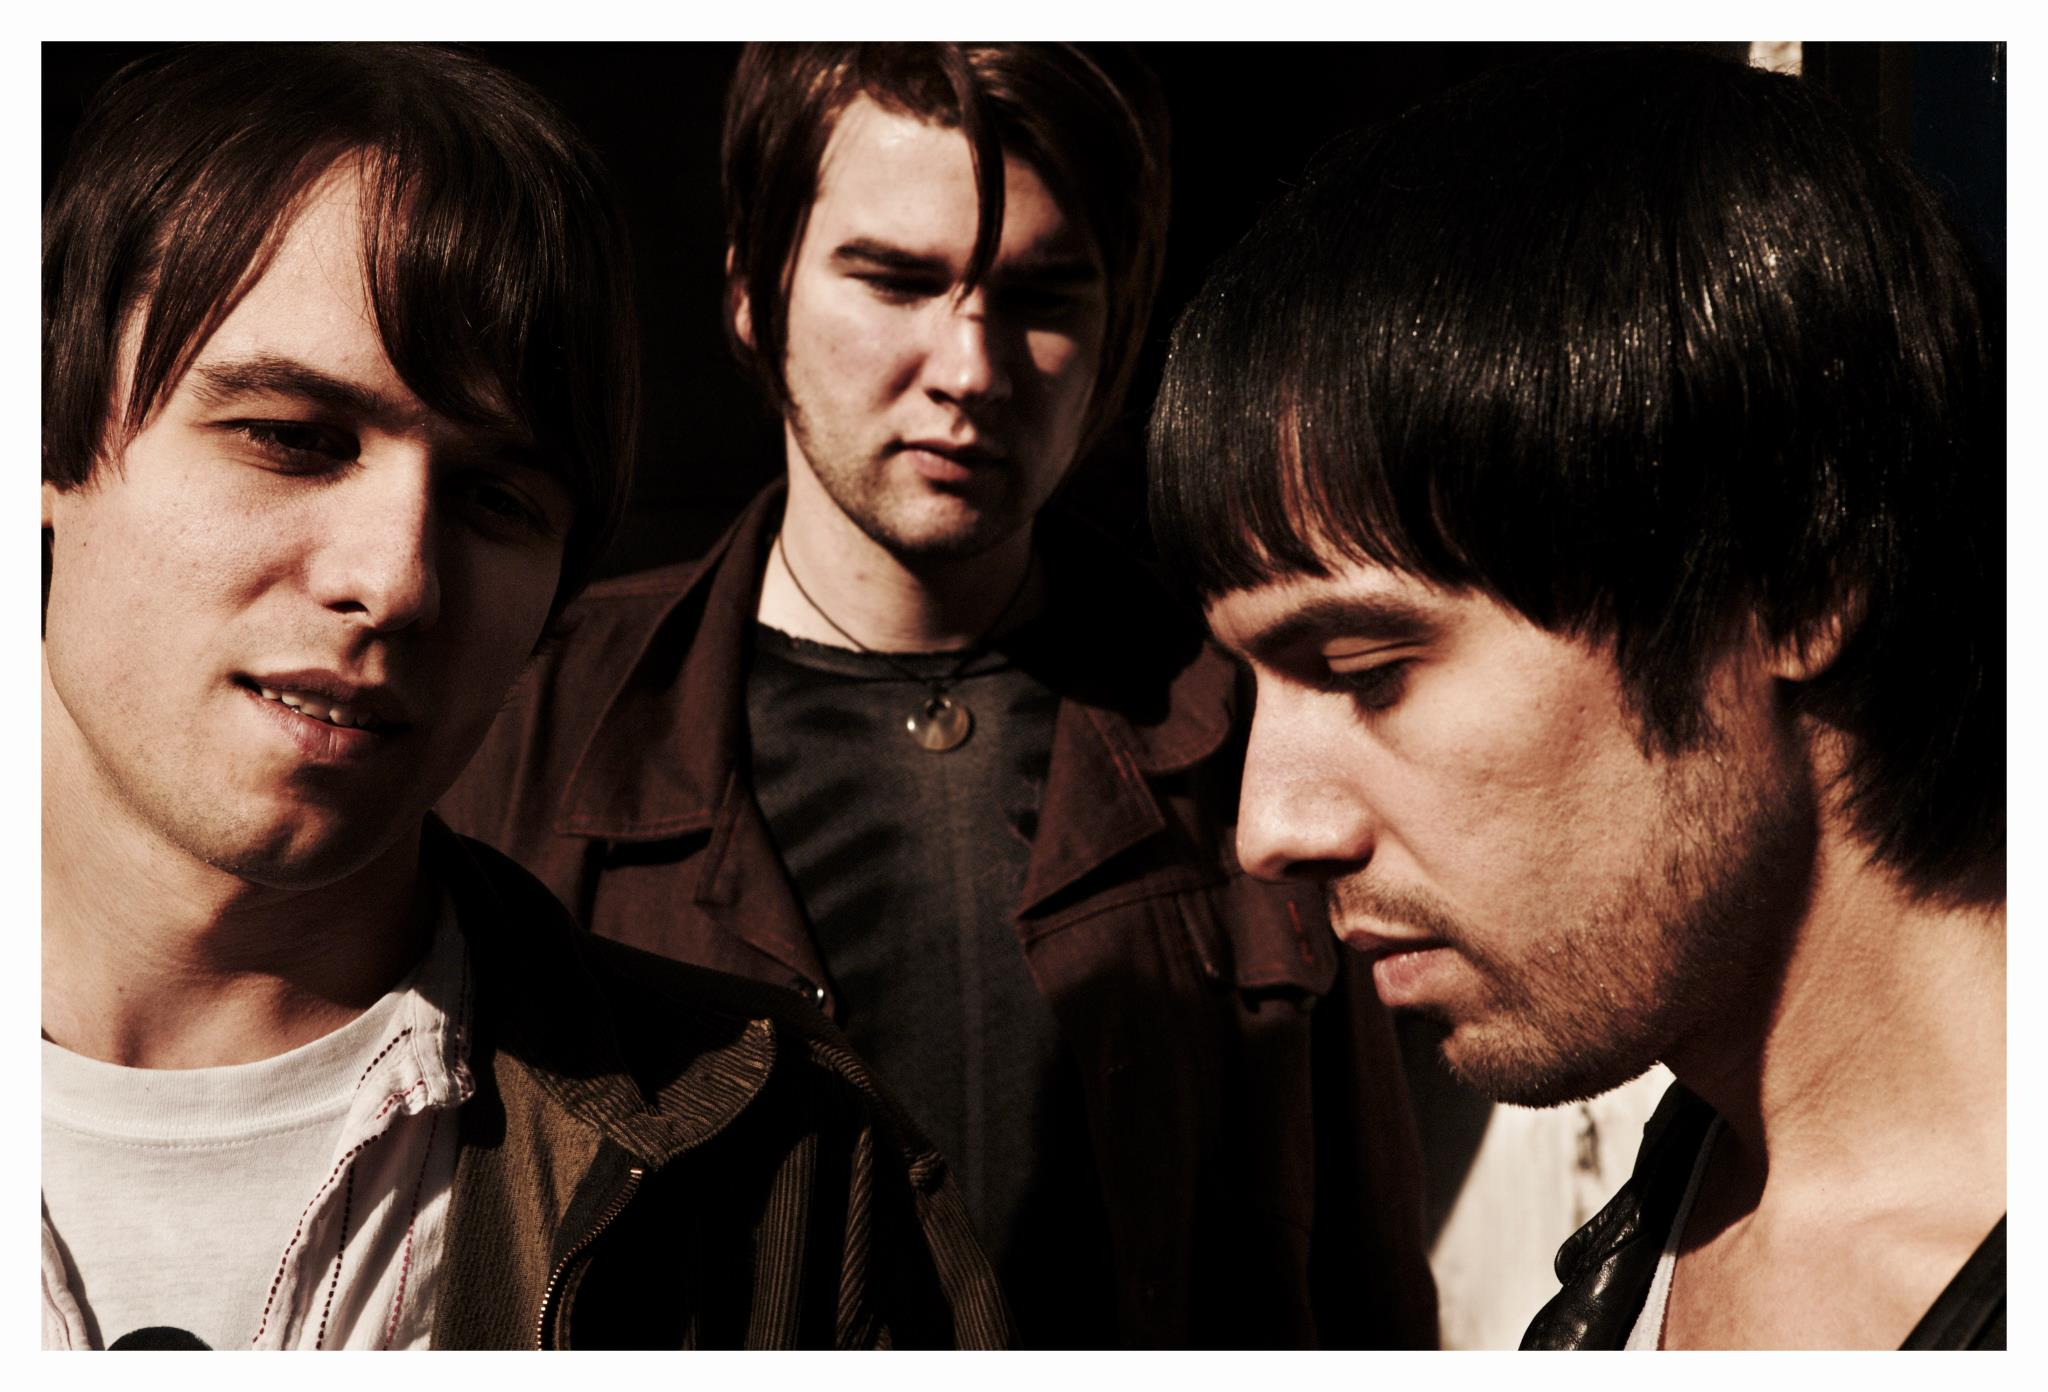 Photo courtesy of The Cribs' Facebook page